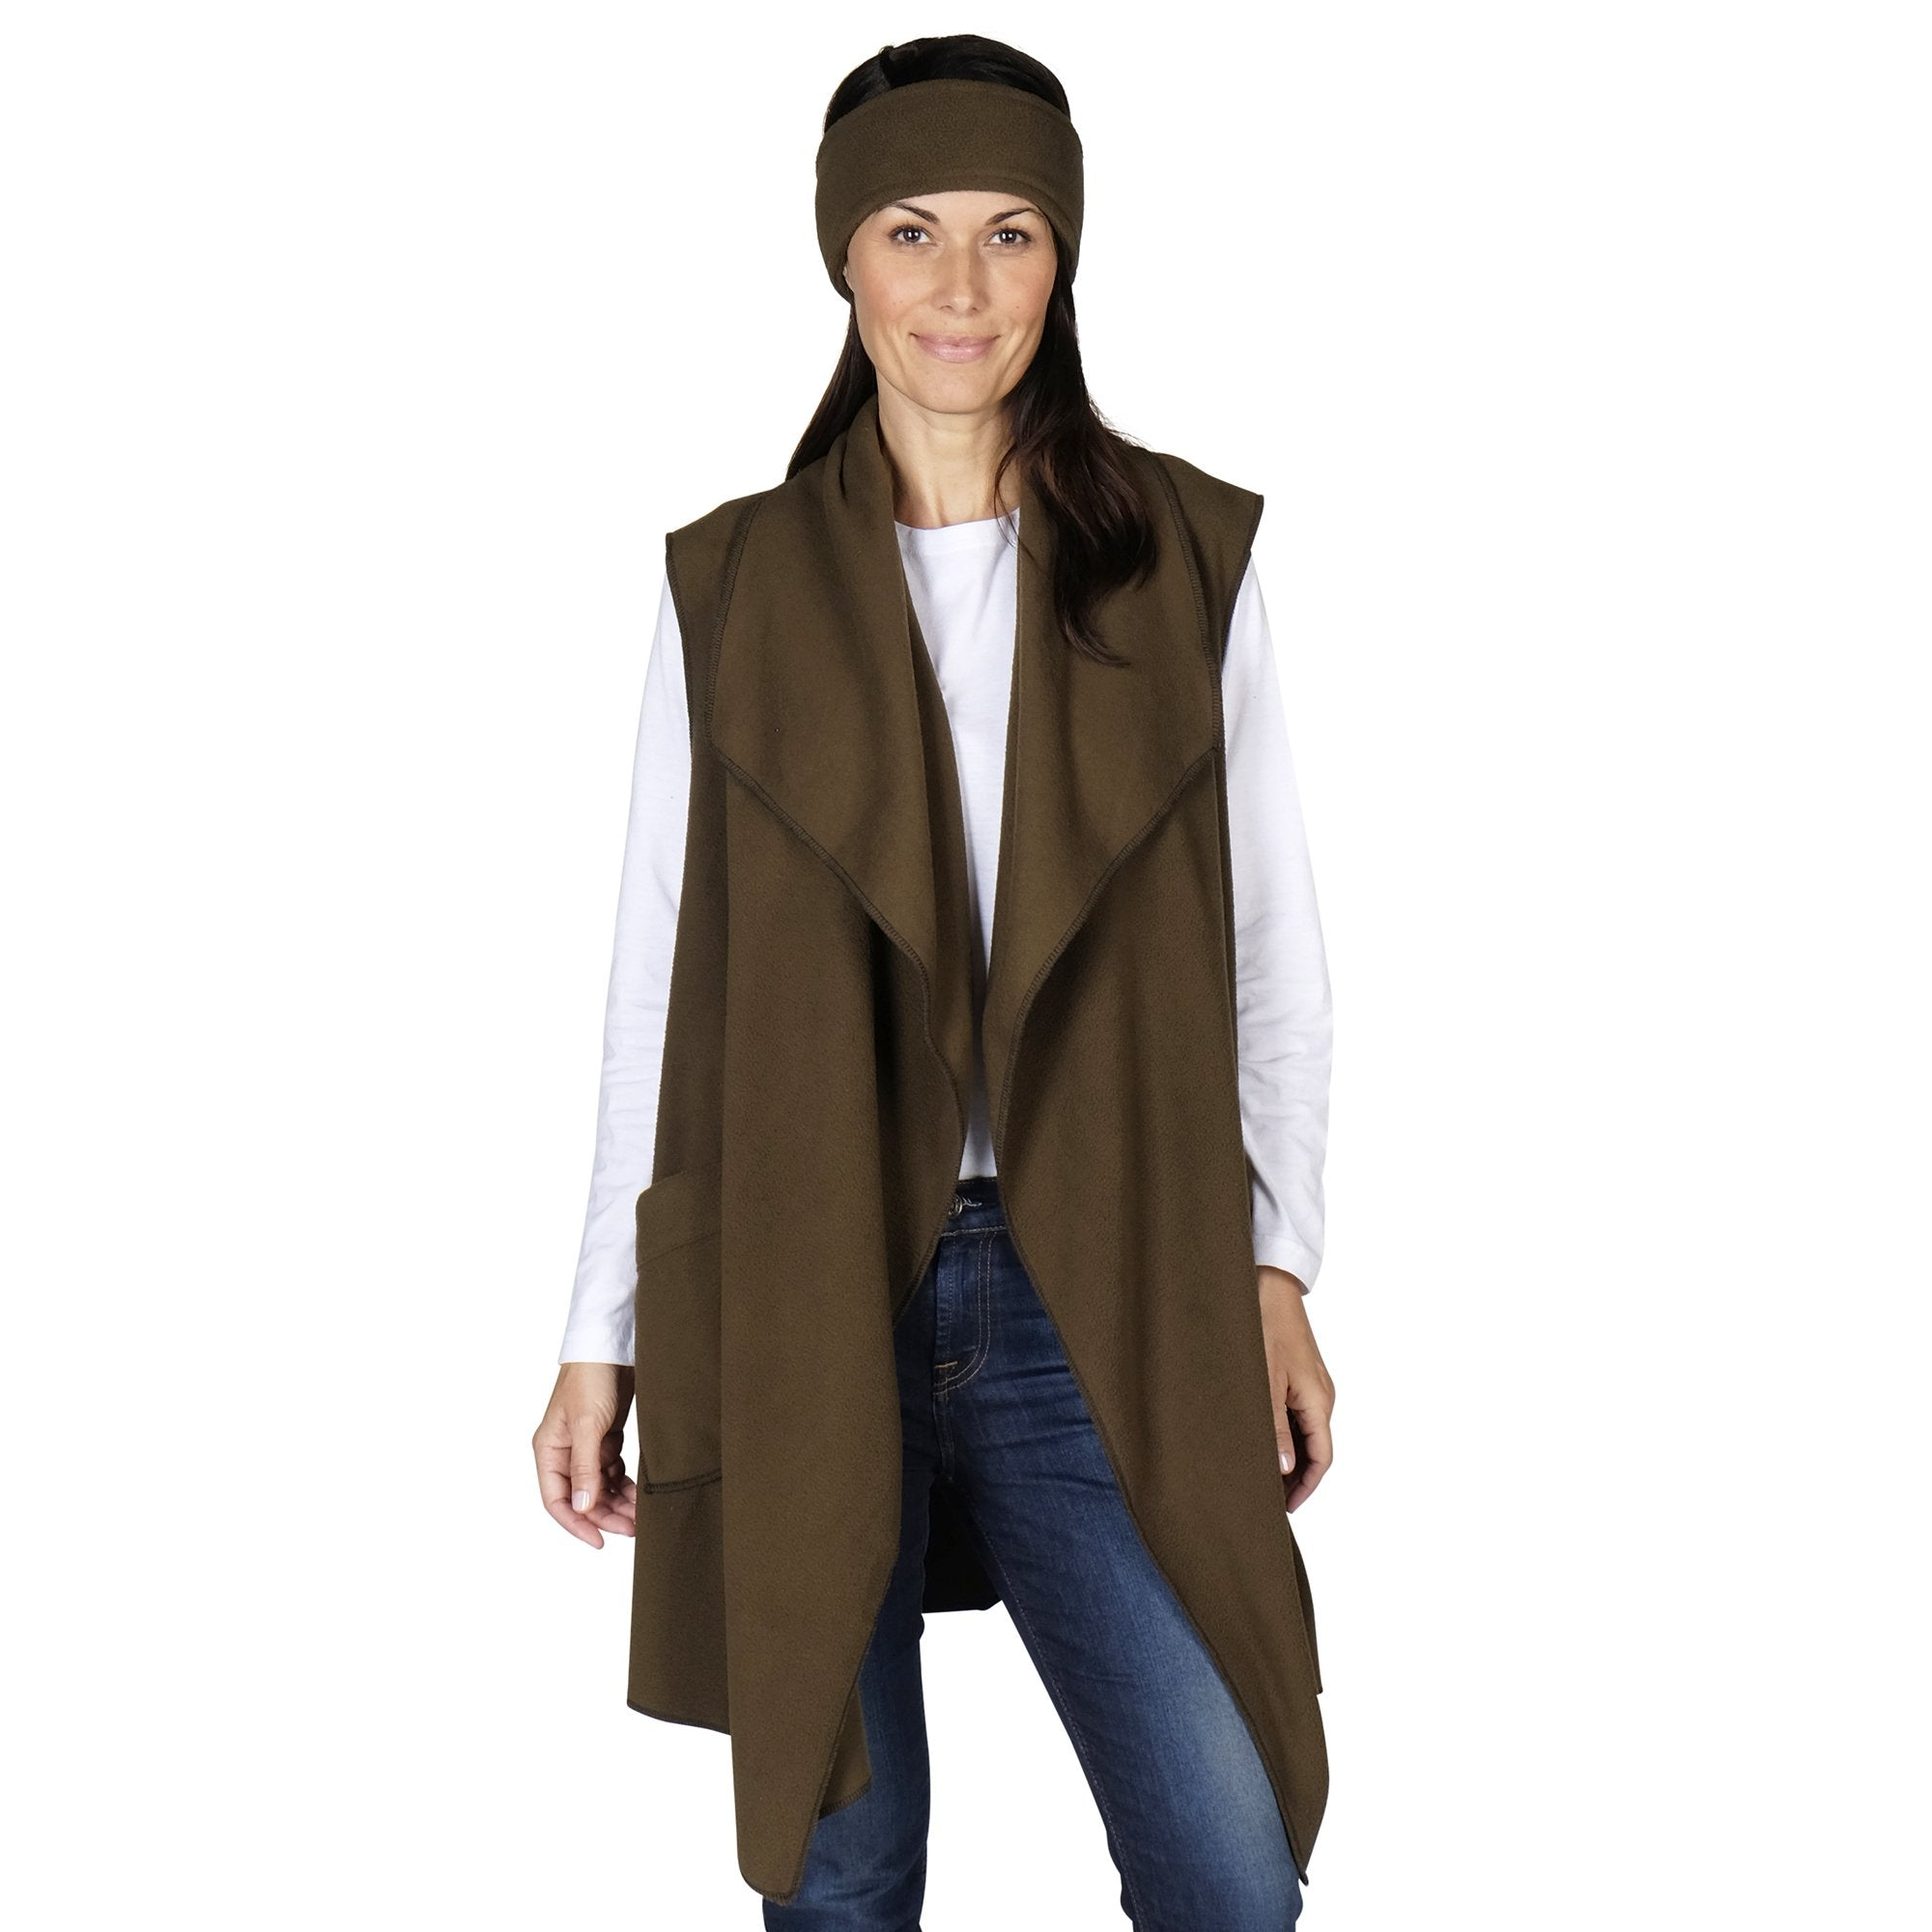 Le Moda Women's Pocketed Open Front Fleece Vest  Cardigan with Headband at Linda Anderson. color_olive